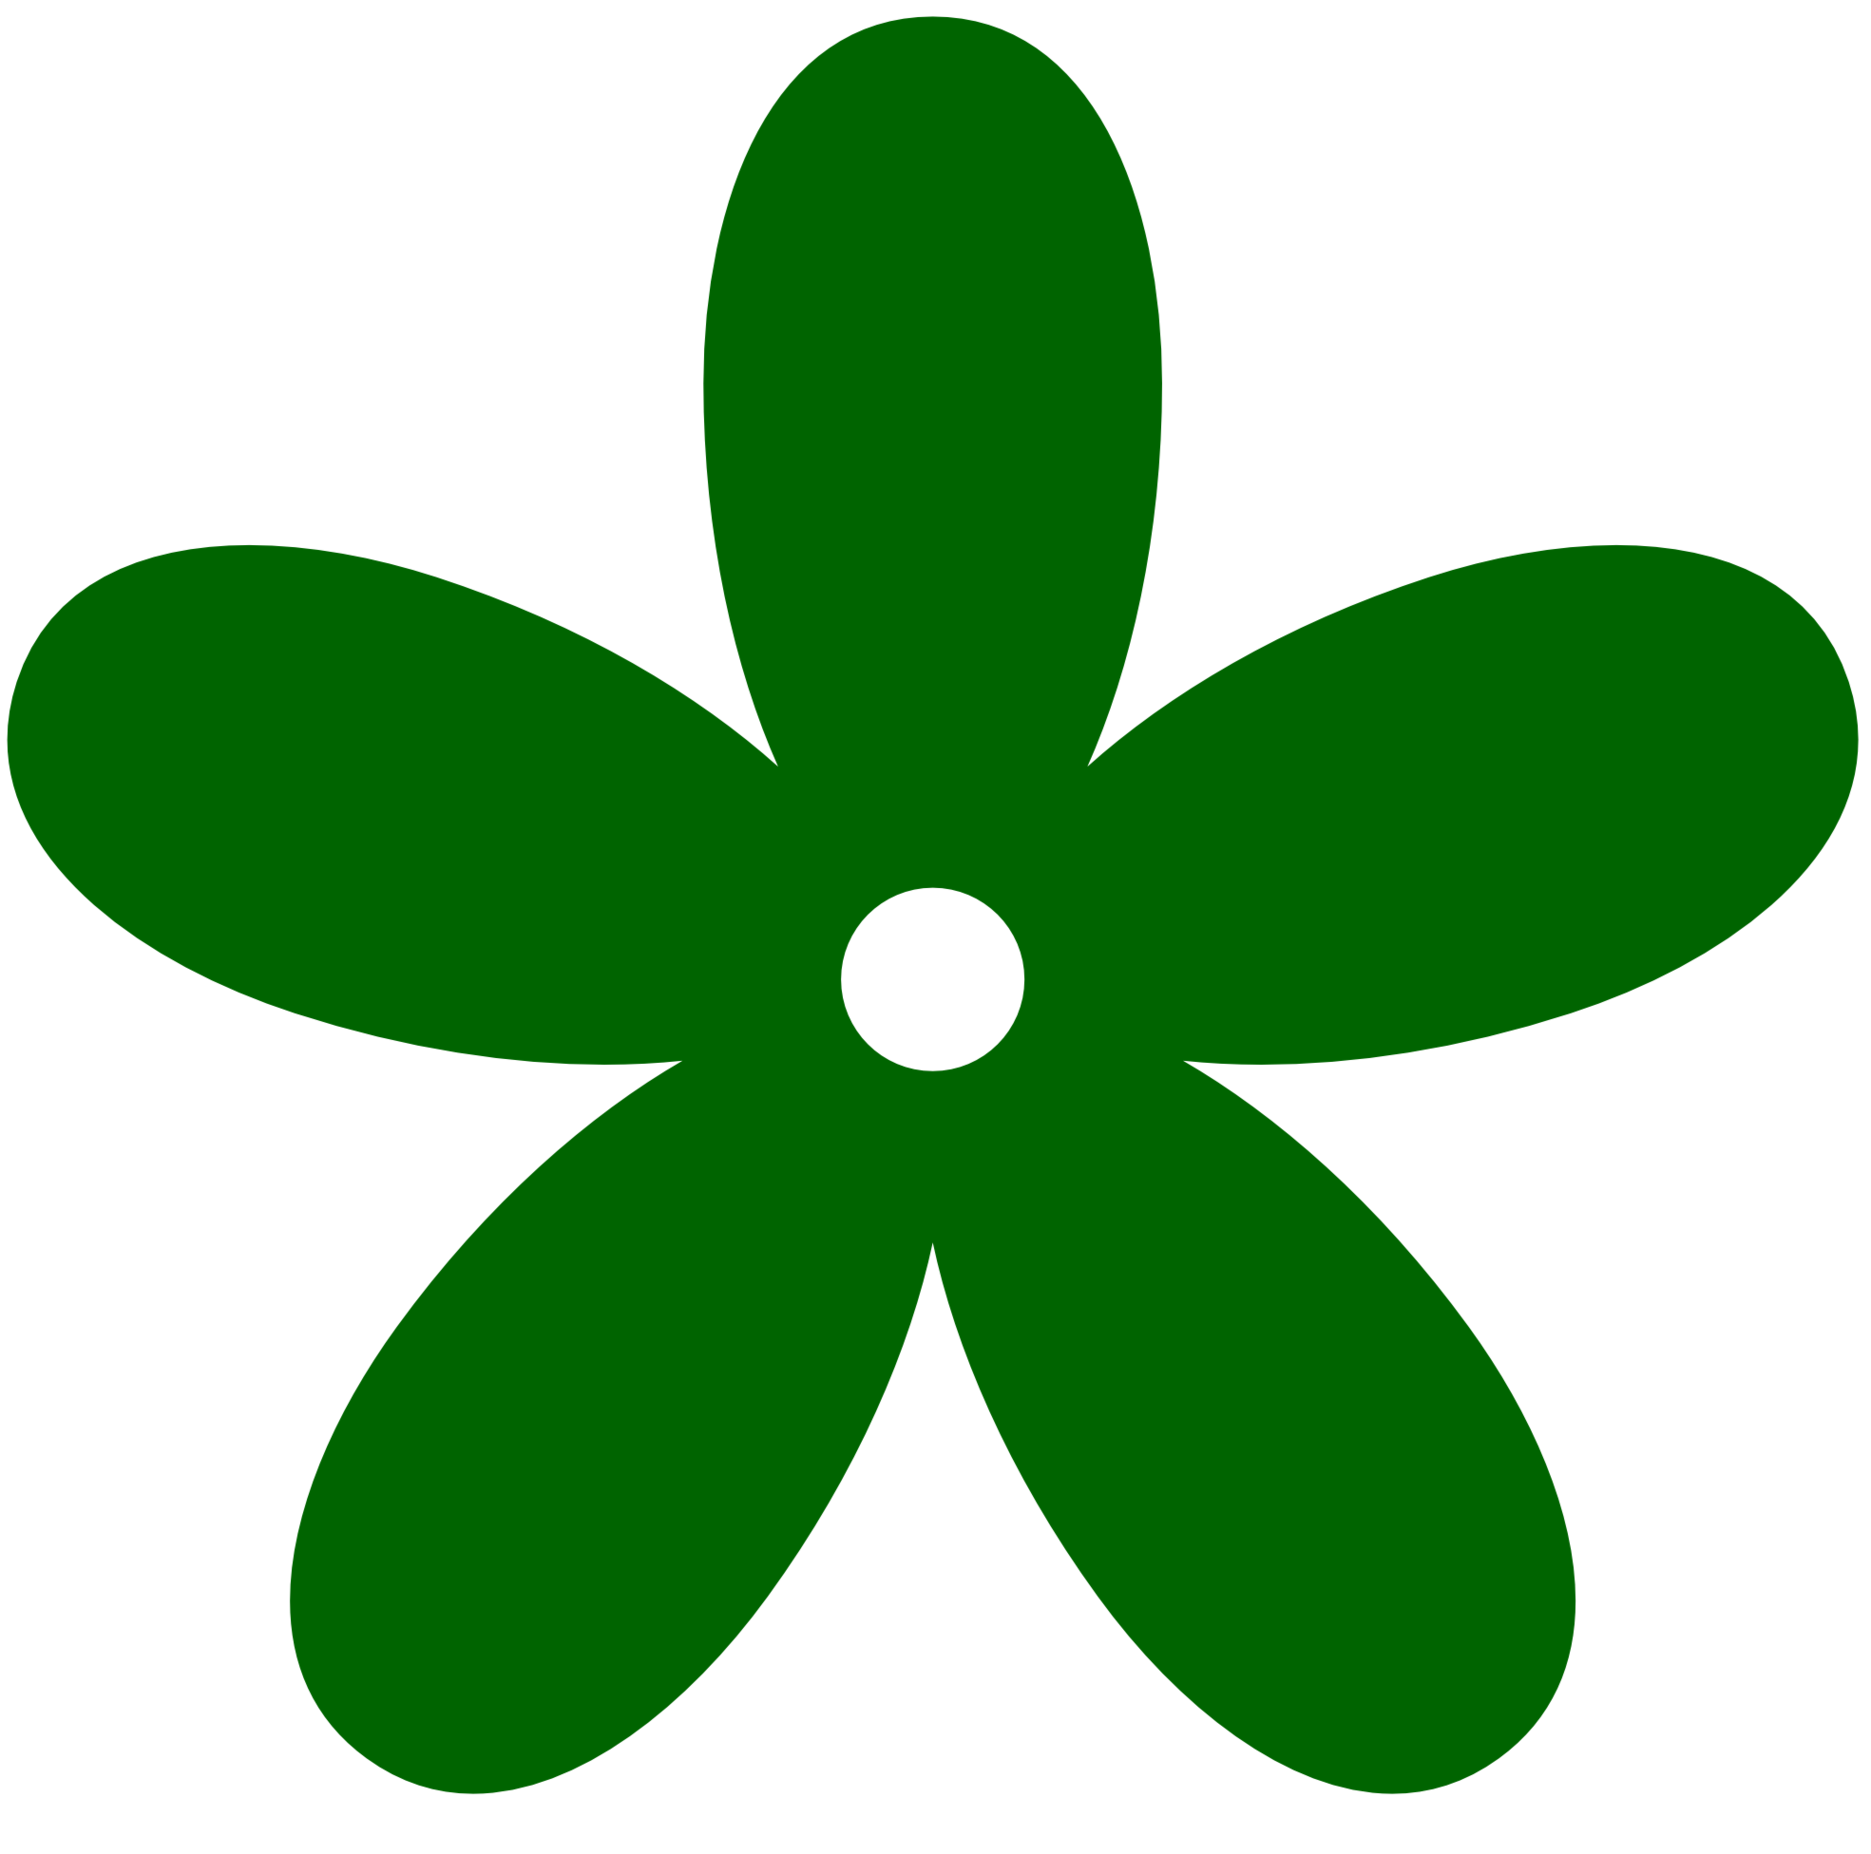 Green flower clipart - Clipground